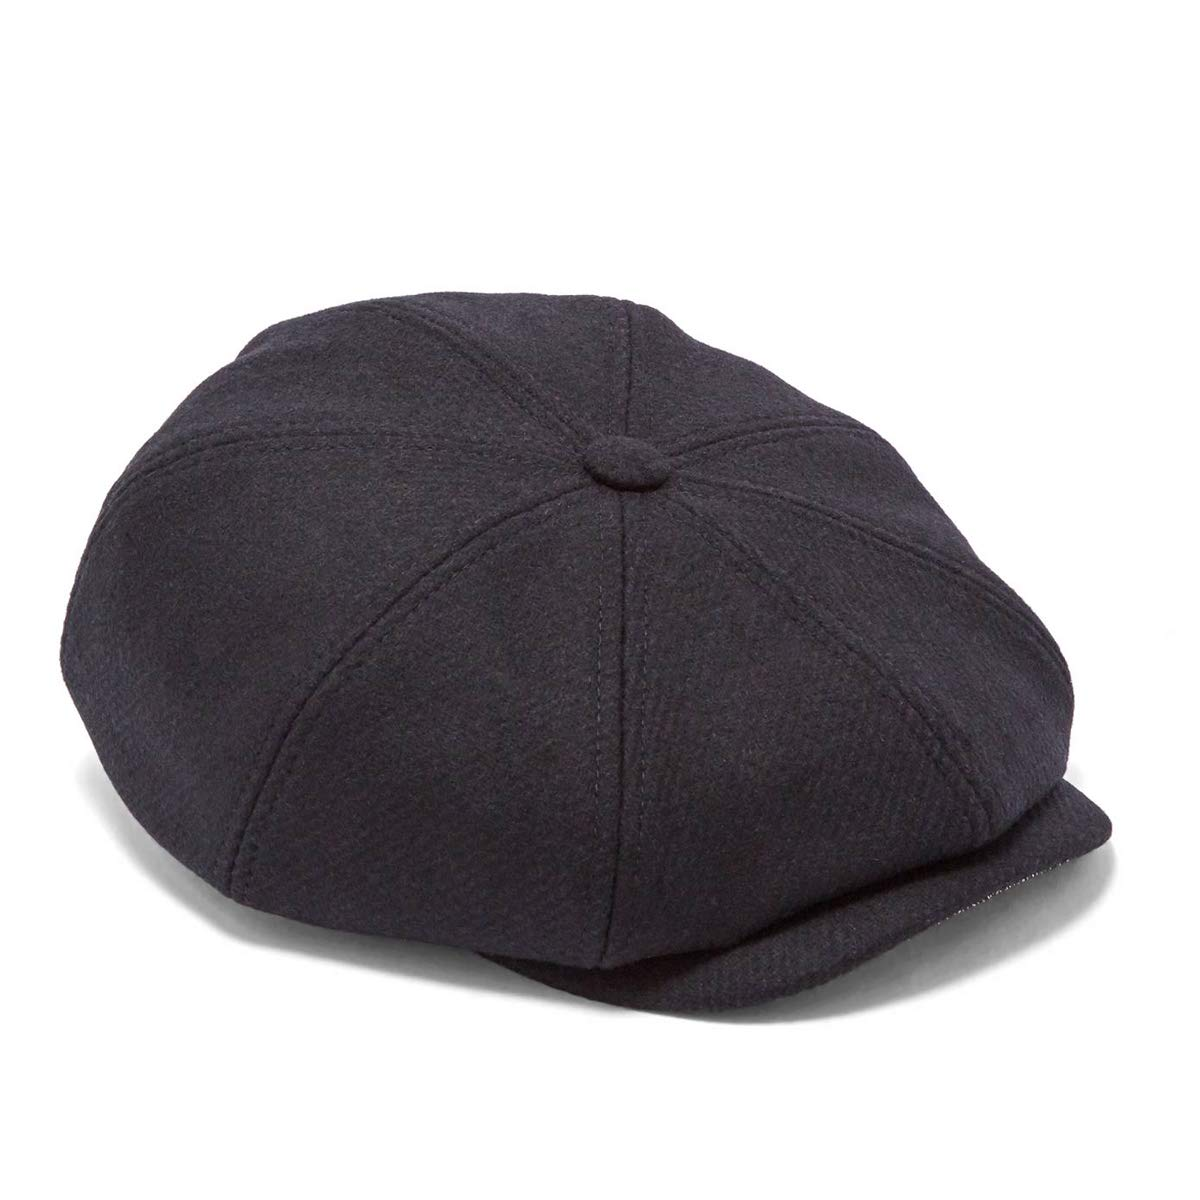 Ted Baker Sugarq Structured Baker Boy Hat - S M 0a4accb963c